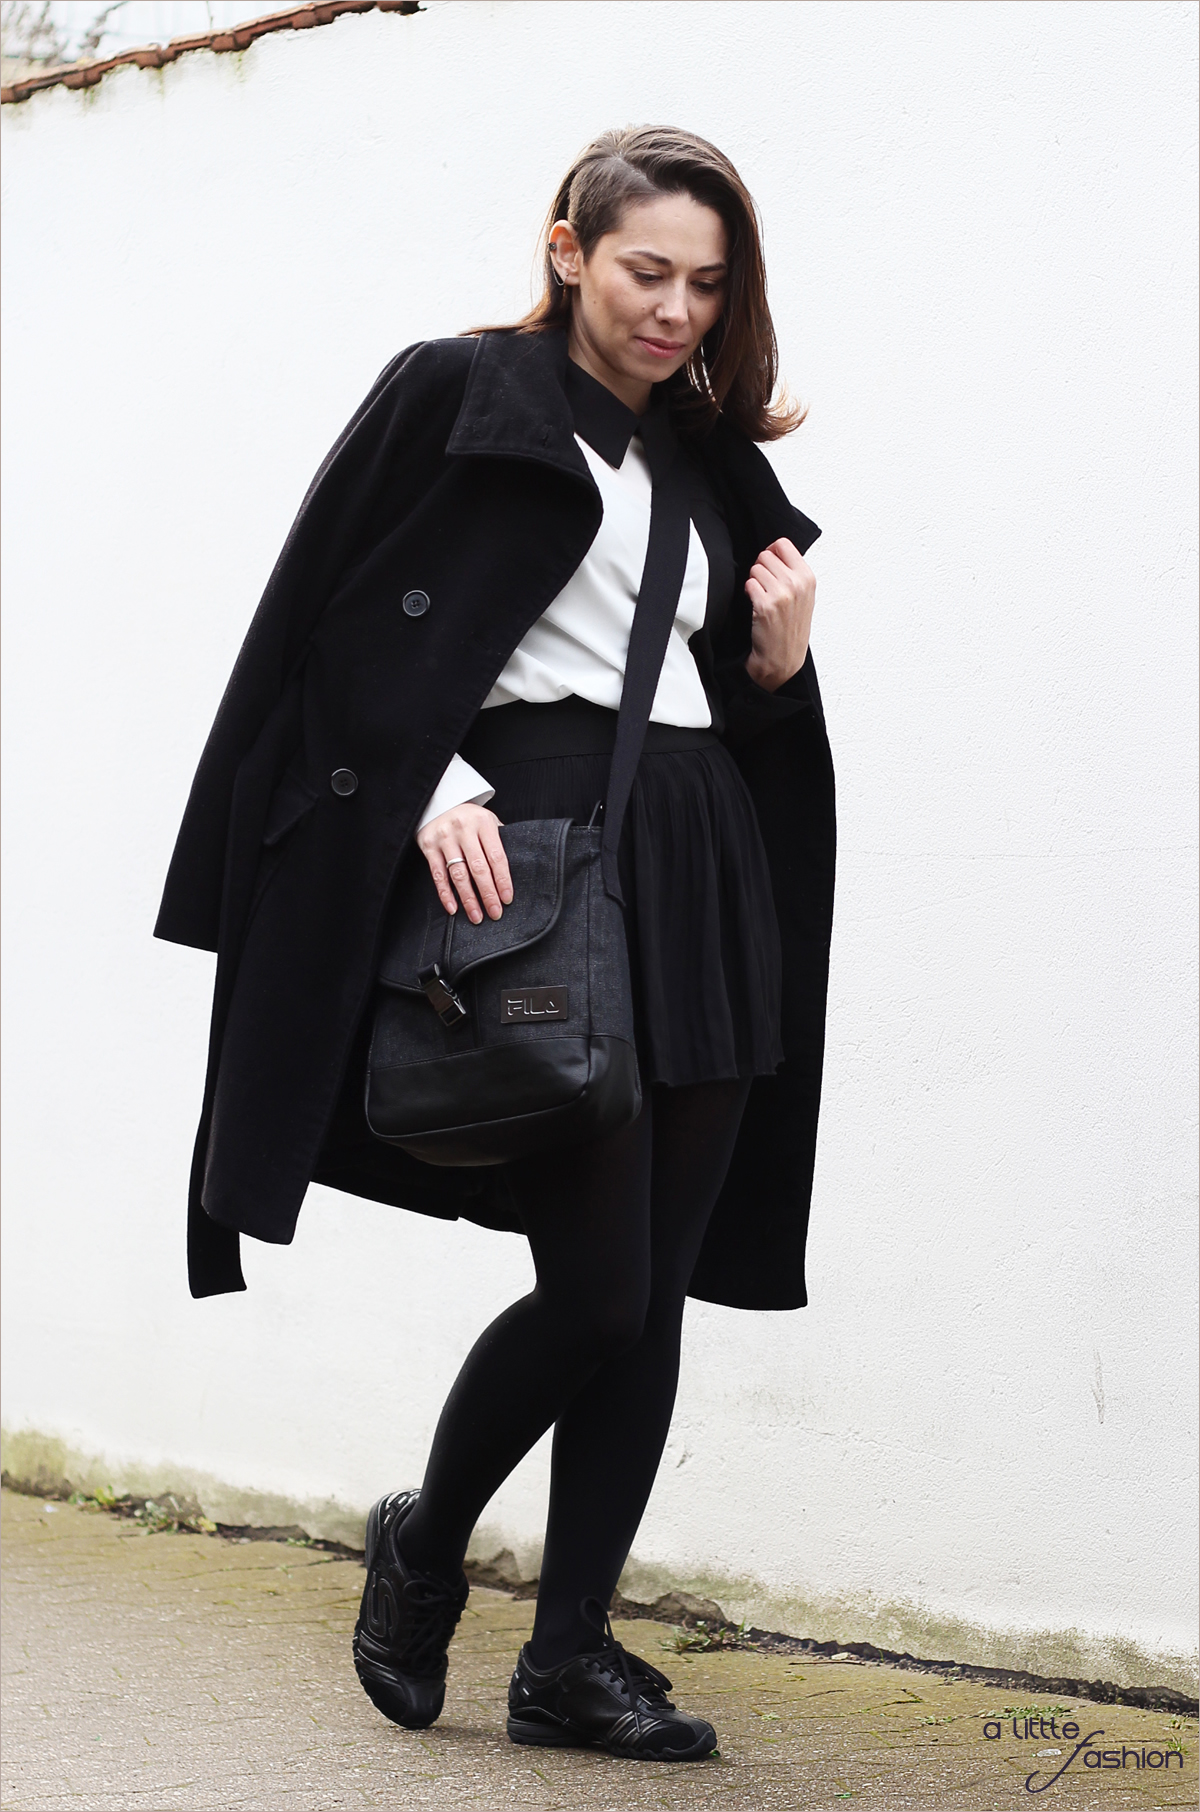 fashion_outfit_style_monochrome_bluse_rock_sneakers_messenger-bag2